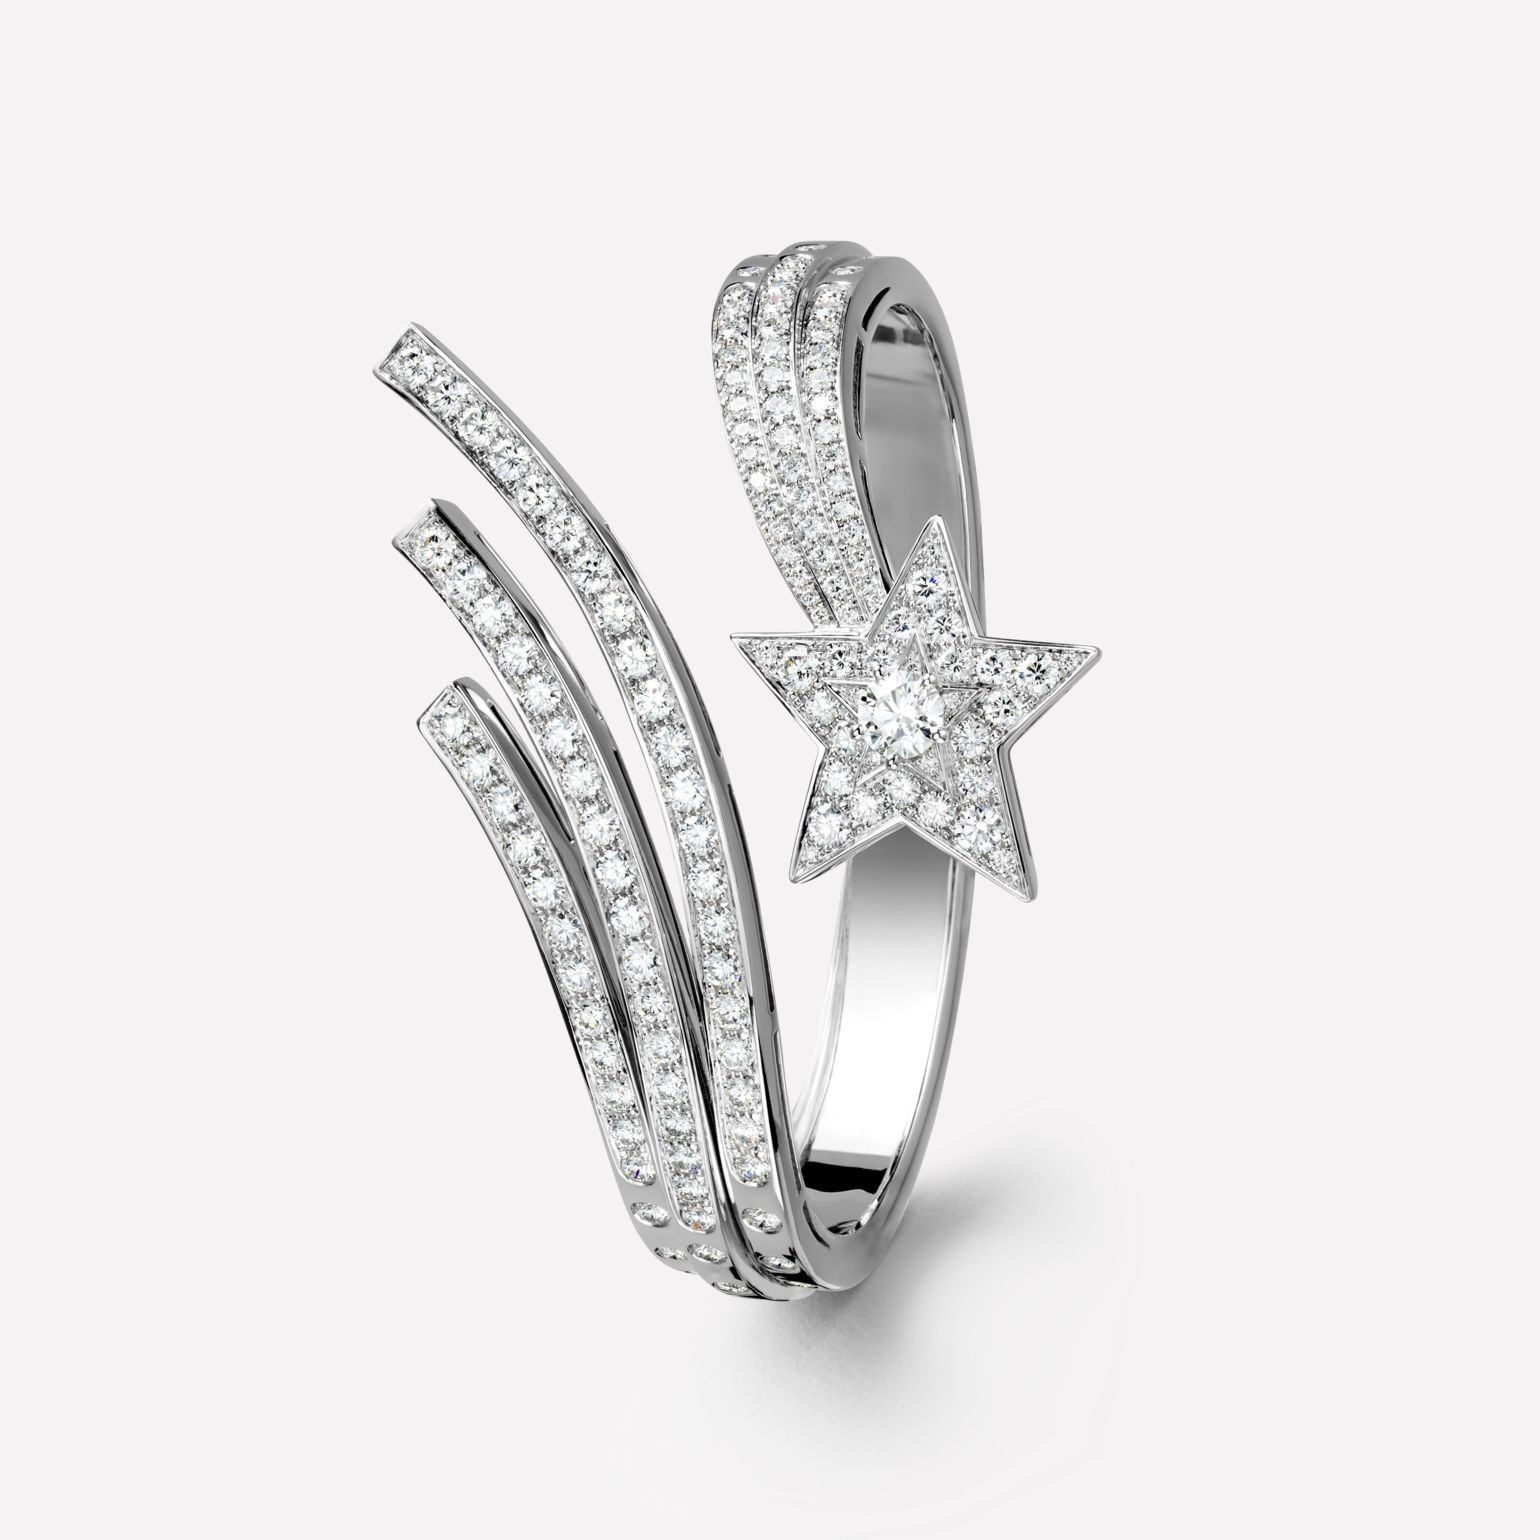 Comète bracelet Shooting star bracelet in 18K white gold and diamonds with one center diamond